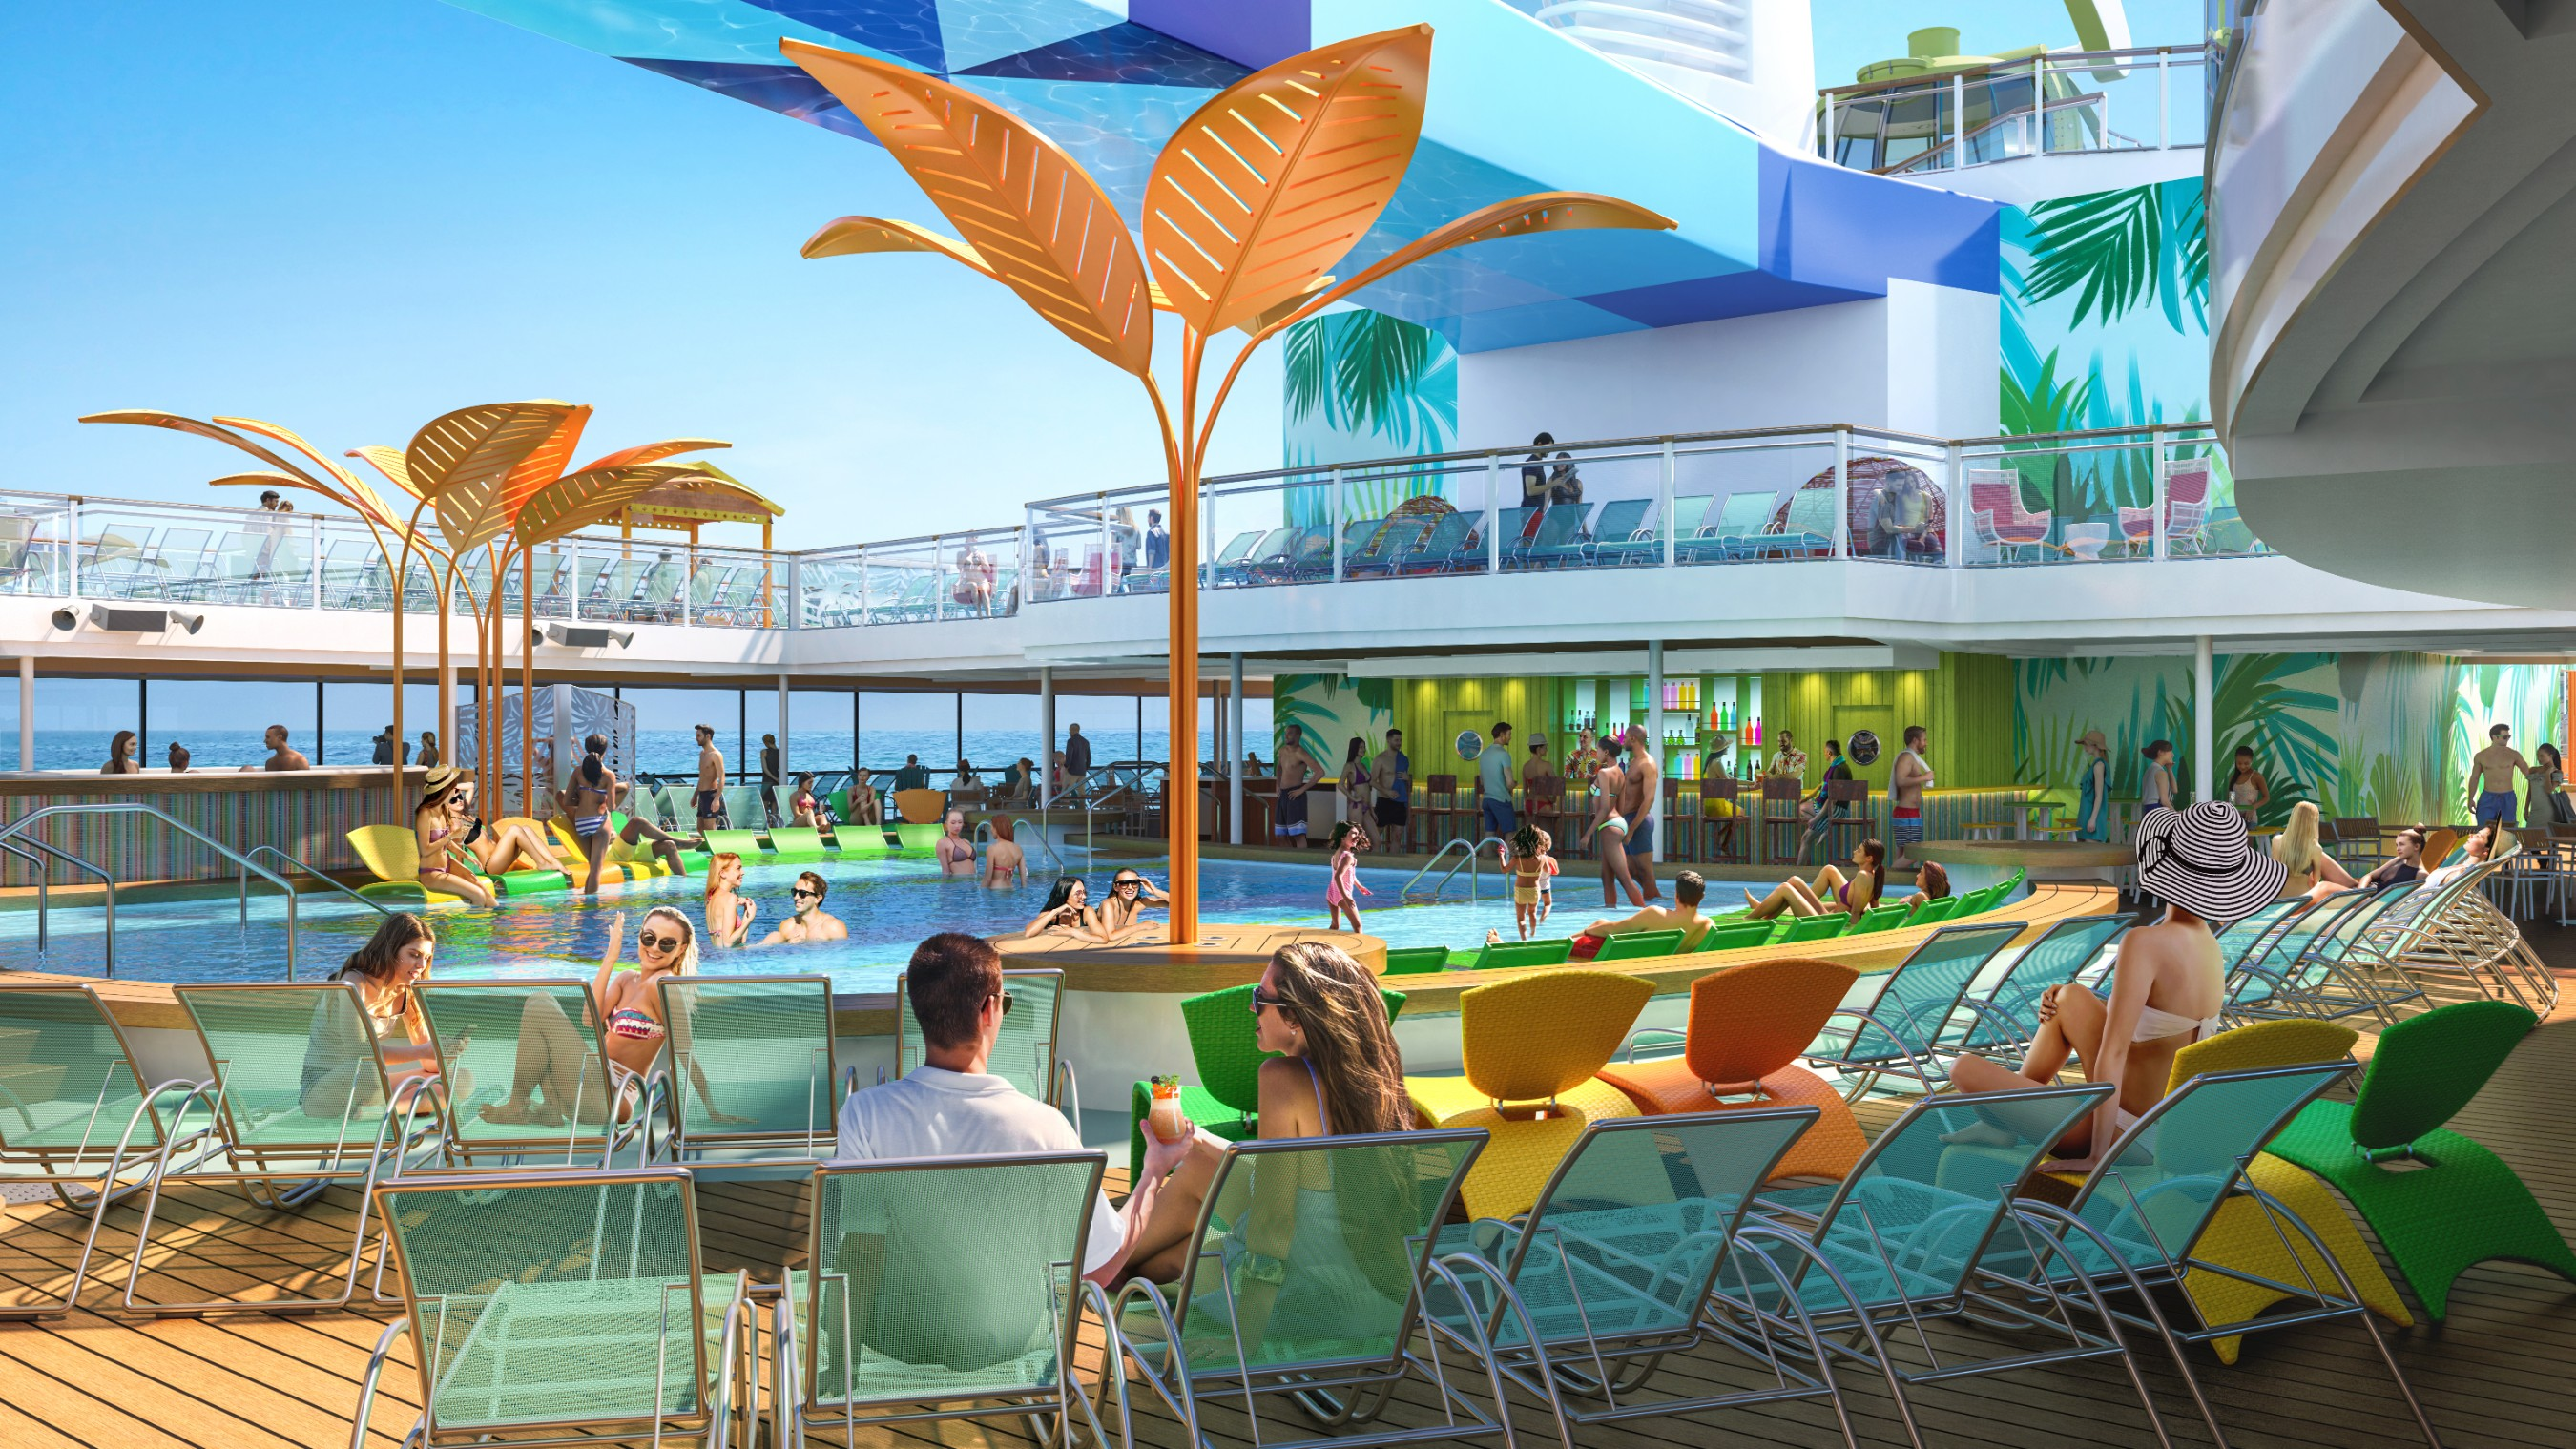 Royal Caribbean's new Odyssey of the Seas will be the first Quantum Ultra Class ship to feature two open-air, resort-style pools. Designed for downtime under the sun and stars, Odyssey will debut November 2020, cruising from Fort Lauderdale to the eastern, southern and western Caribbean. Beginning May 2021, Odyssey will sail from Rome to the idyllic Greek Isles.